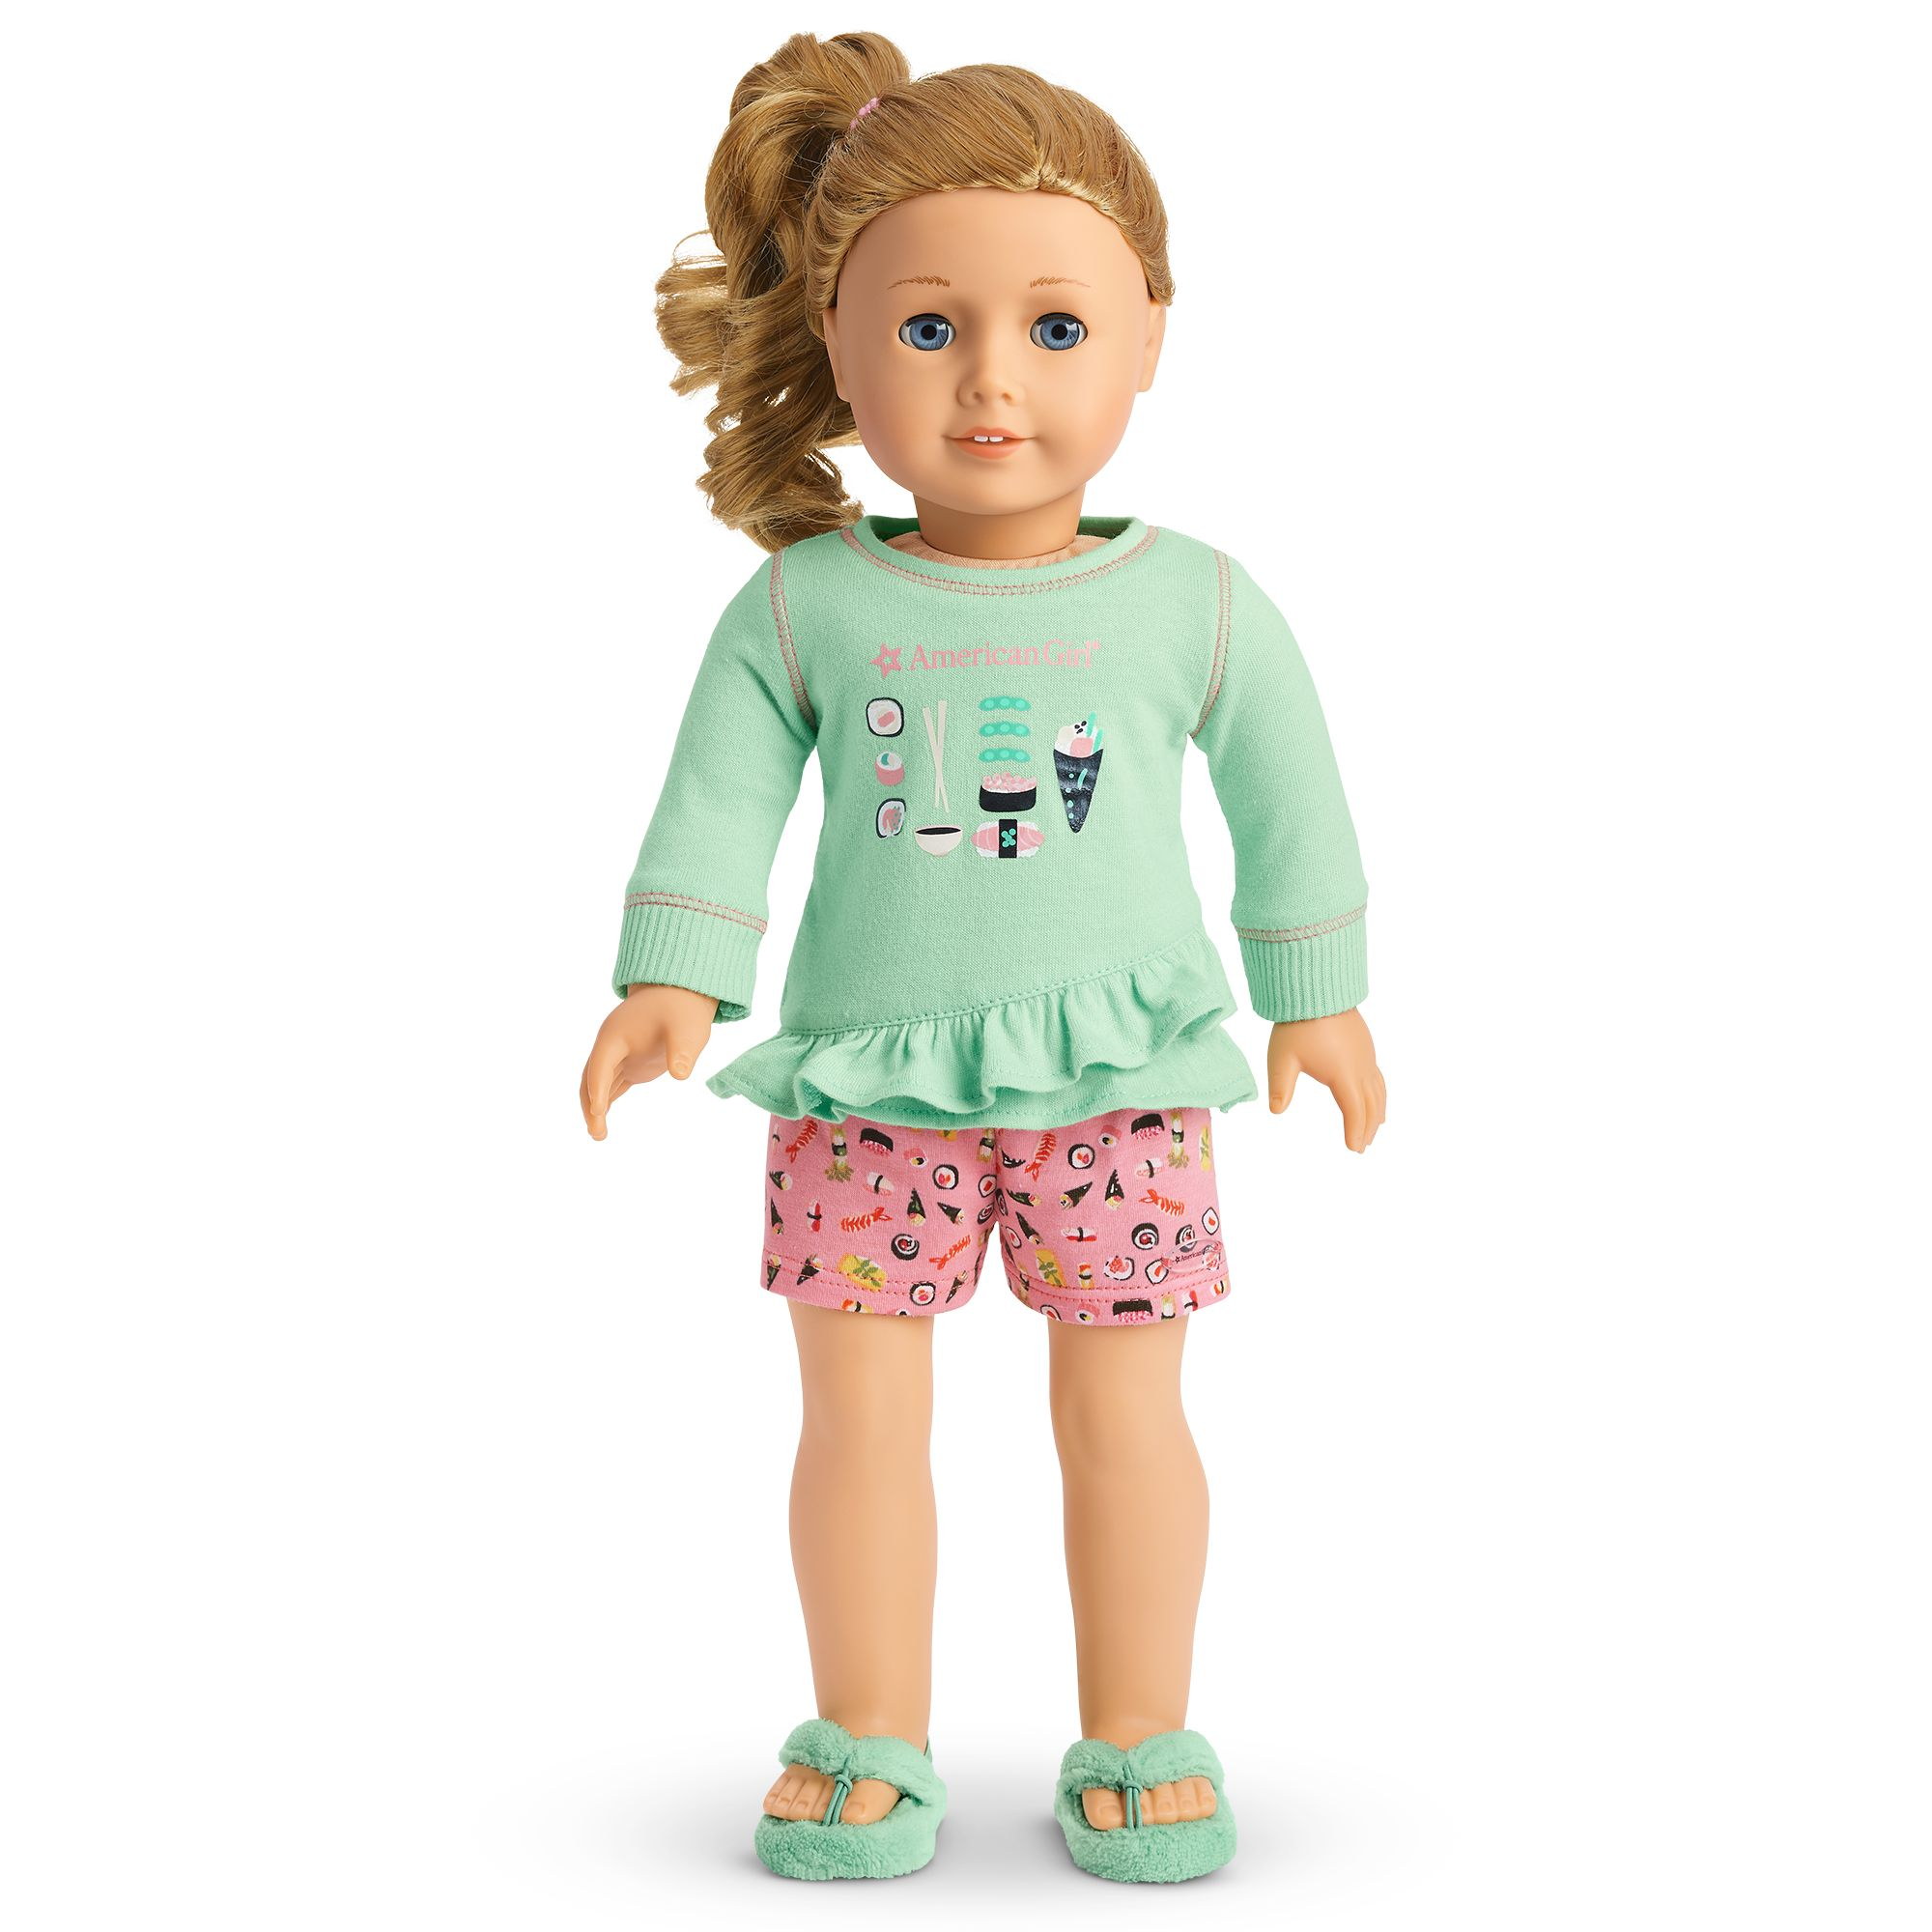 Image result for american girl that's how we roll